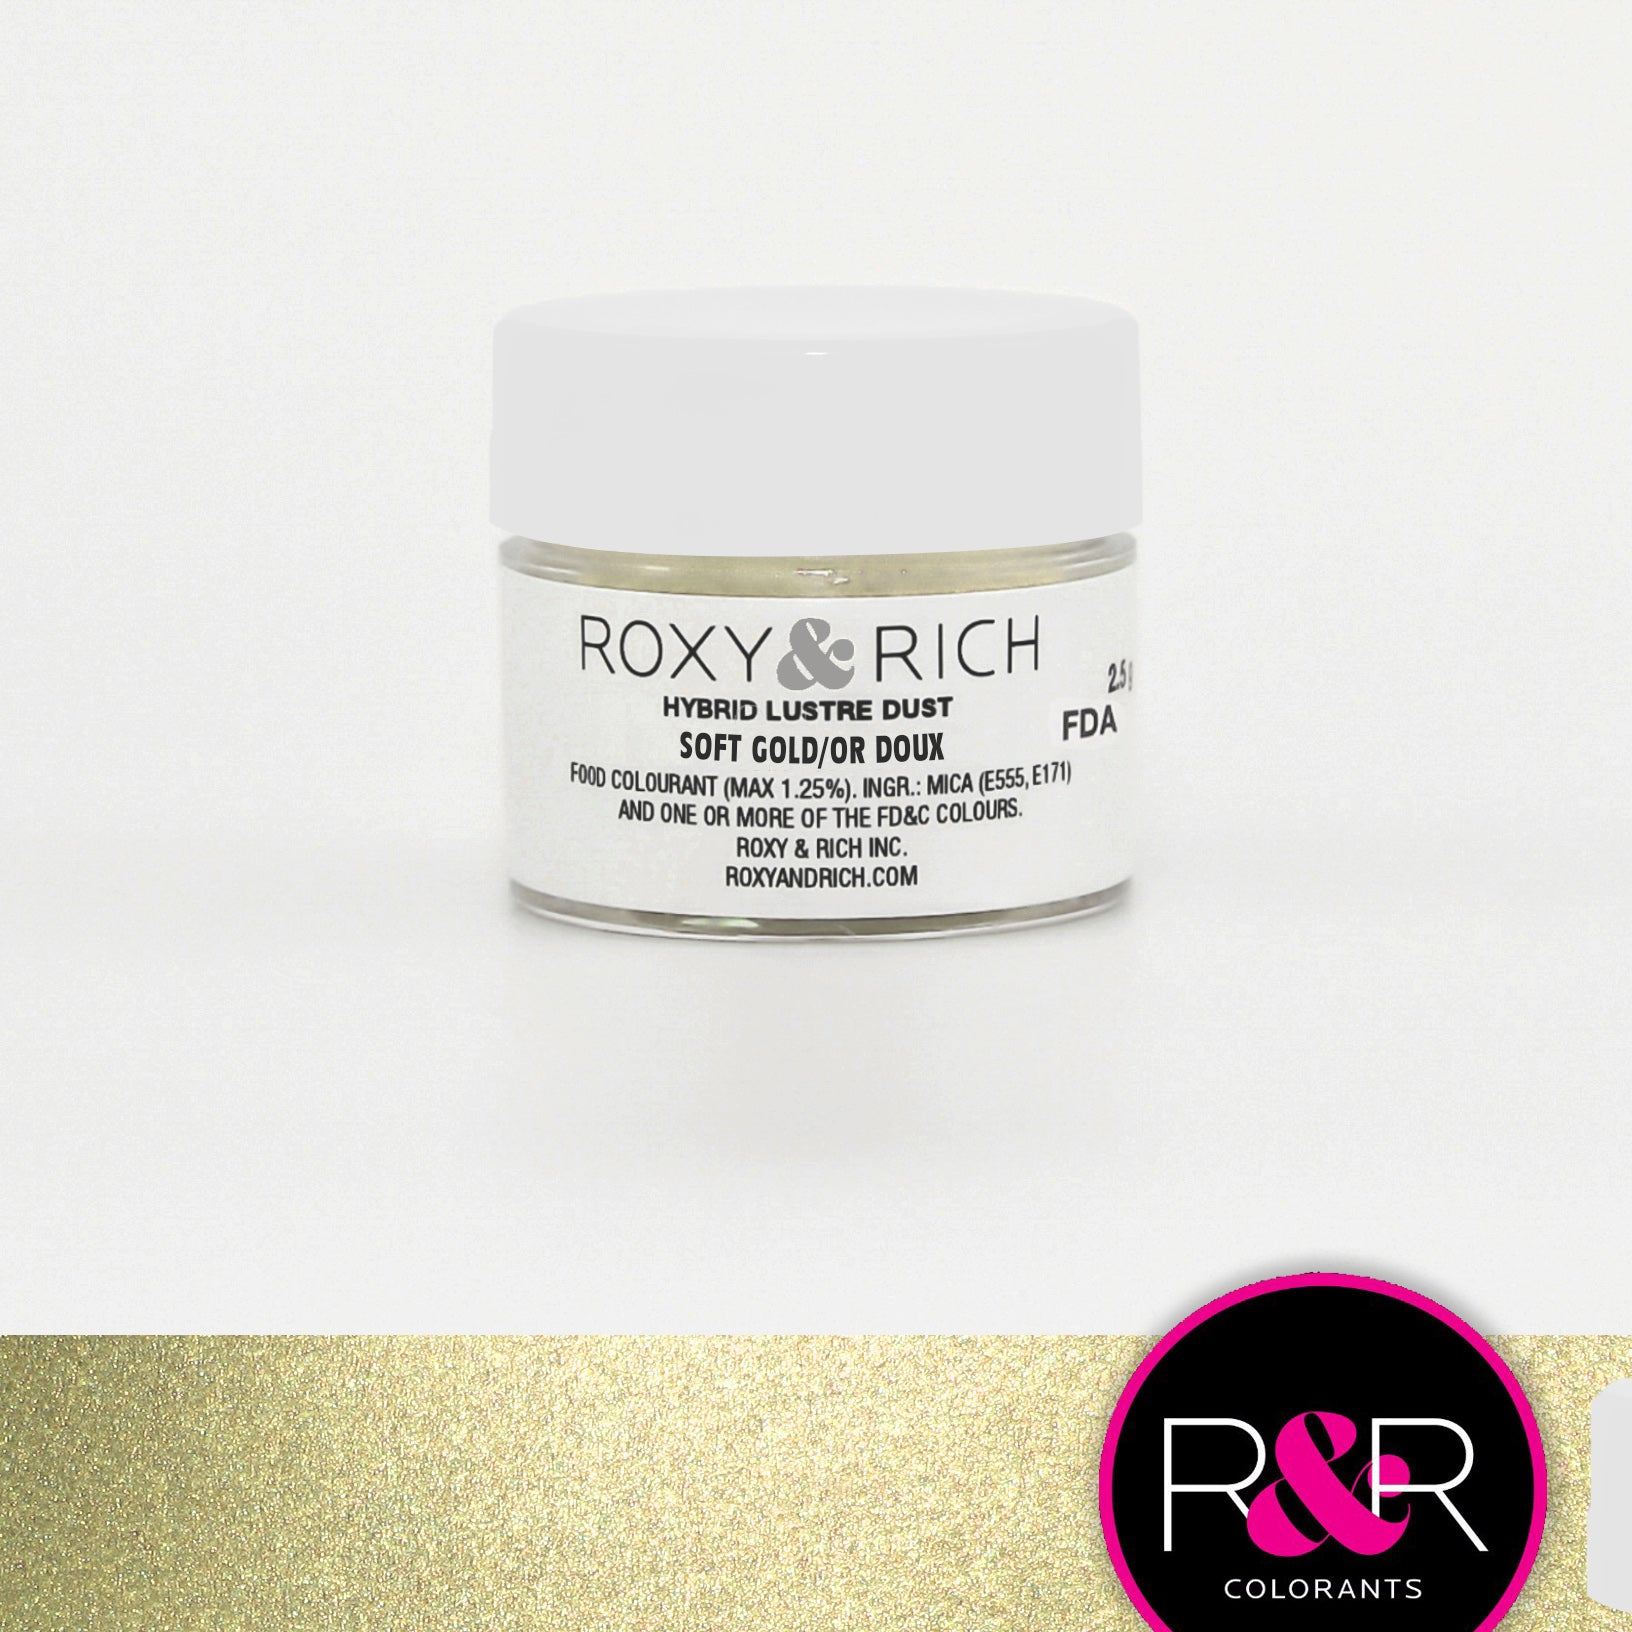 Roxy & Rich Edible Hybrid Luster Dust